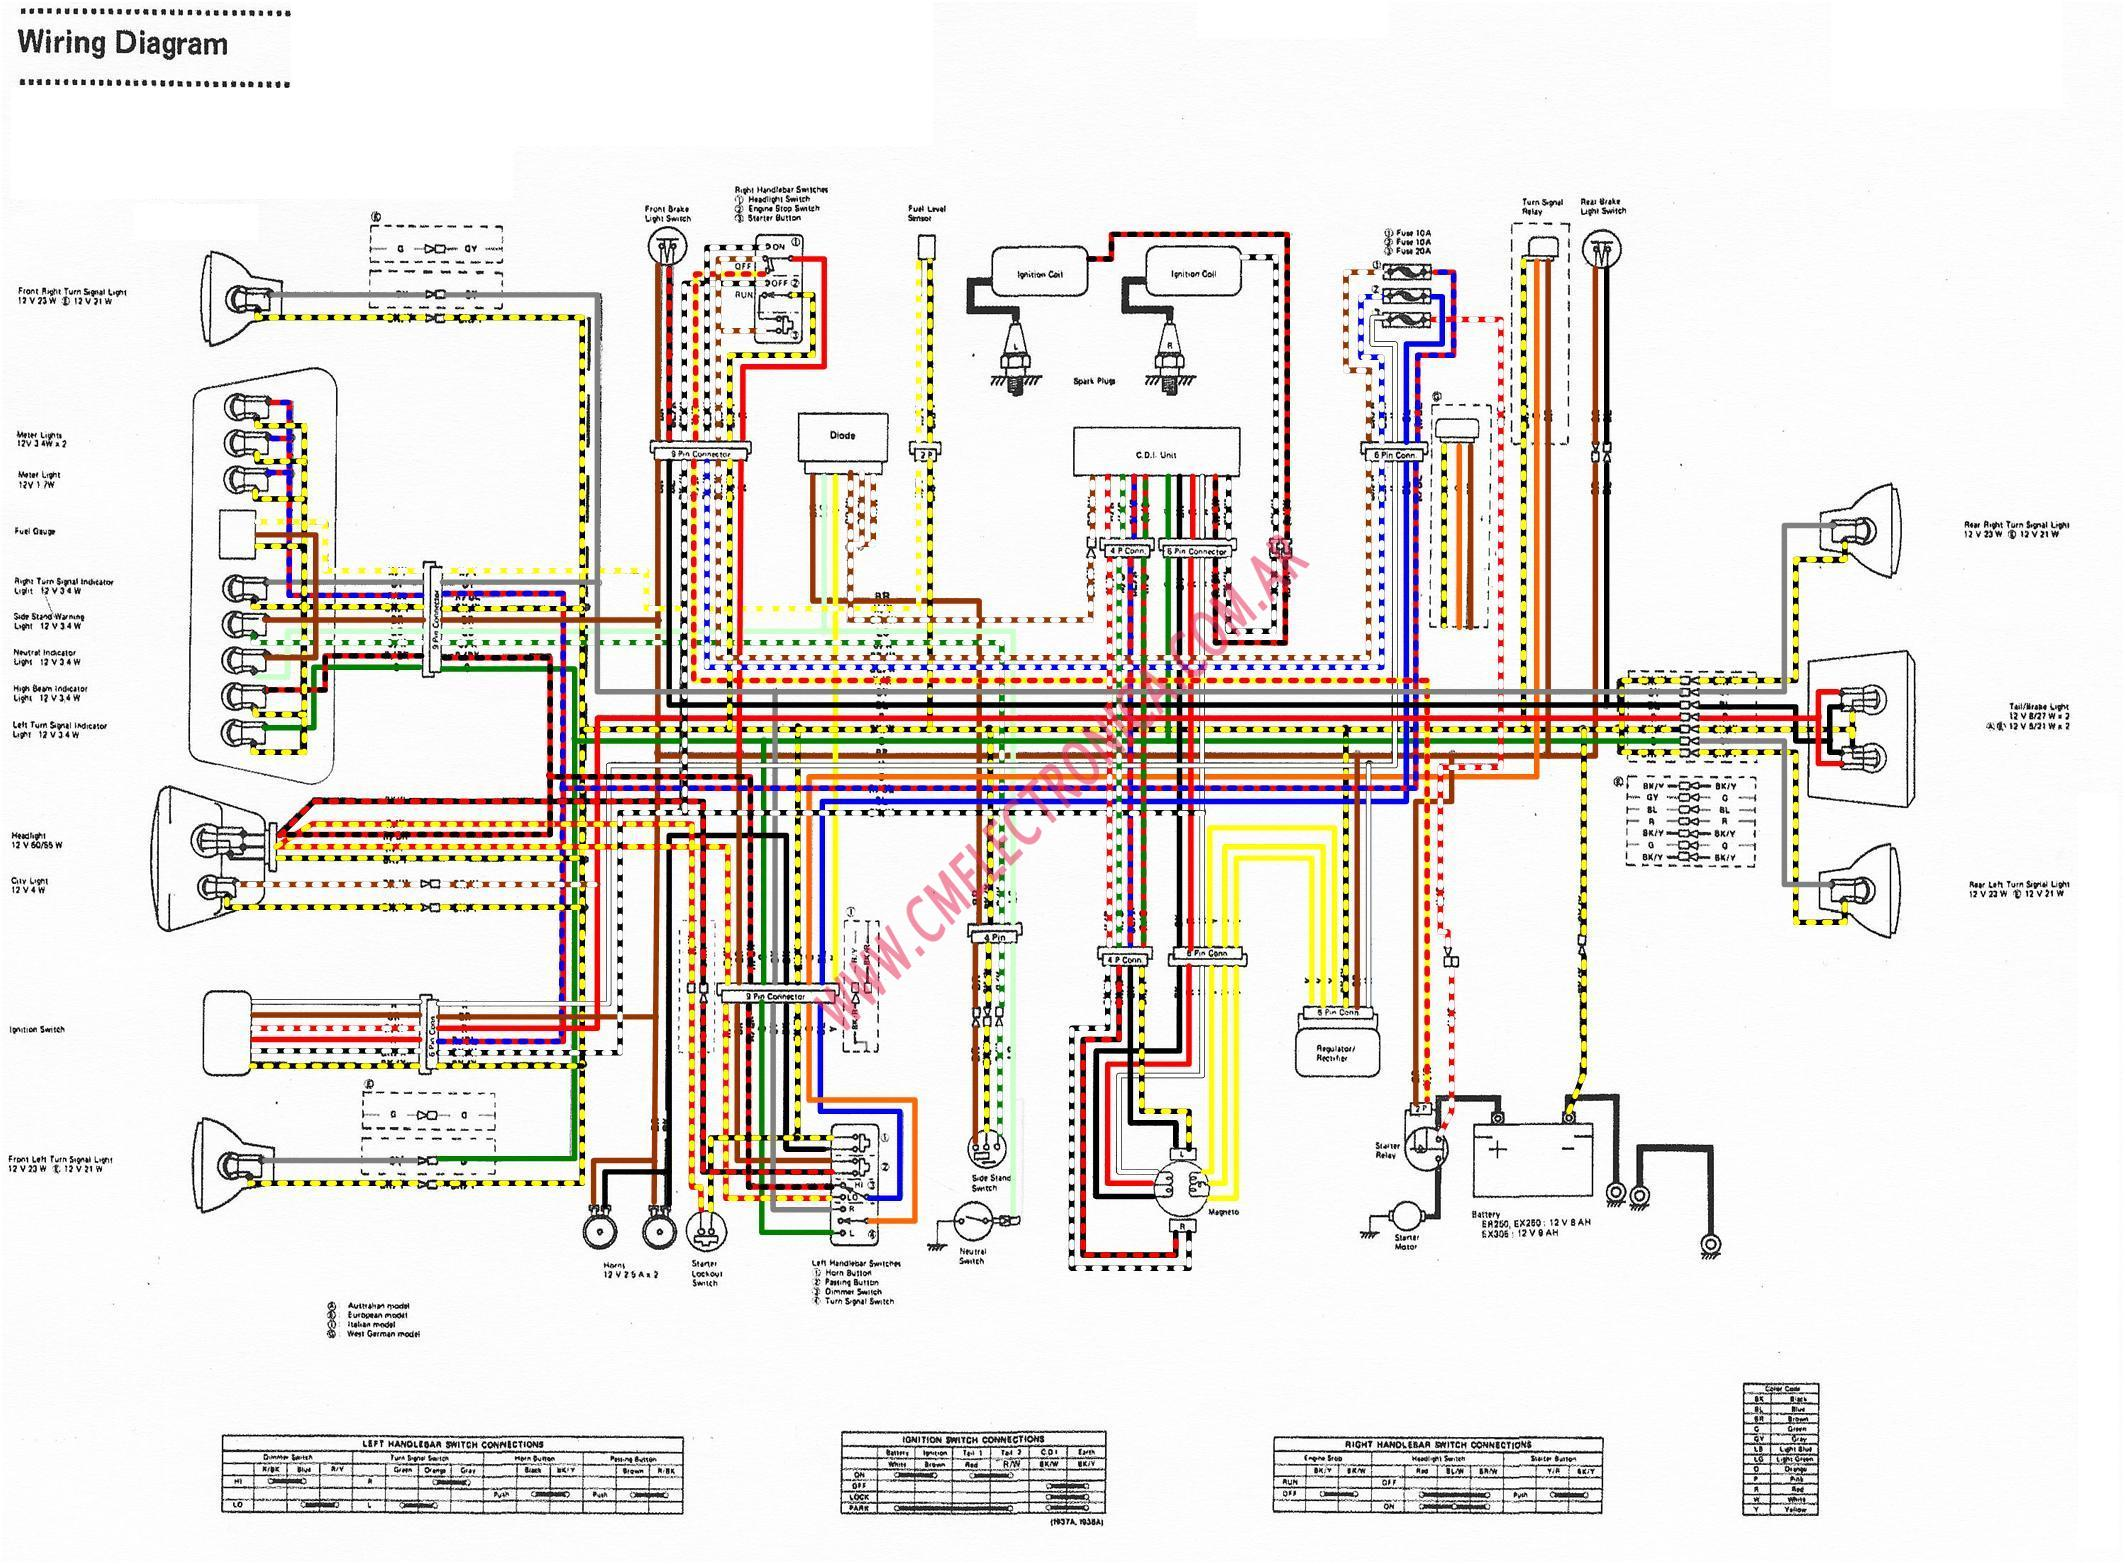 Kawasaki Ninja 250 Wiring Diagram besides 597943 as well Kawasaki Atv Wiring Diagrams likewise Wiring Harness Blue Wire moreover Kawasaki Z 550 Wiring Diagram. on ninja 250r wiring diagram